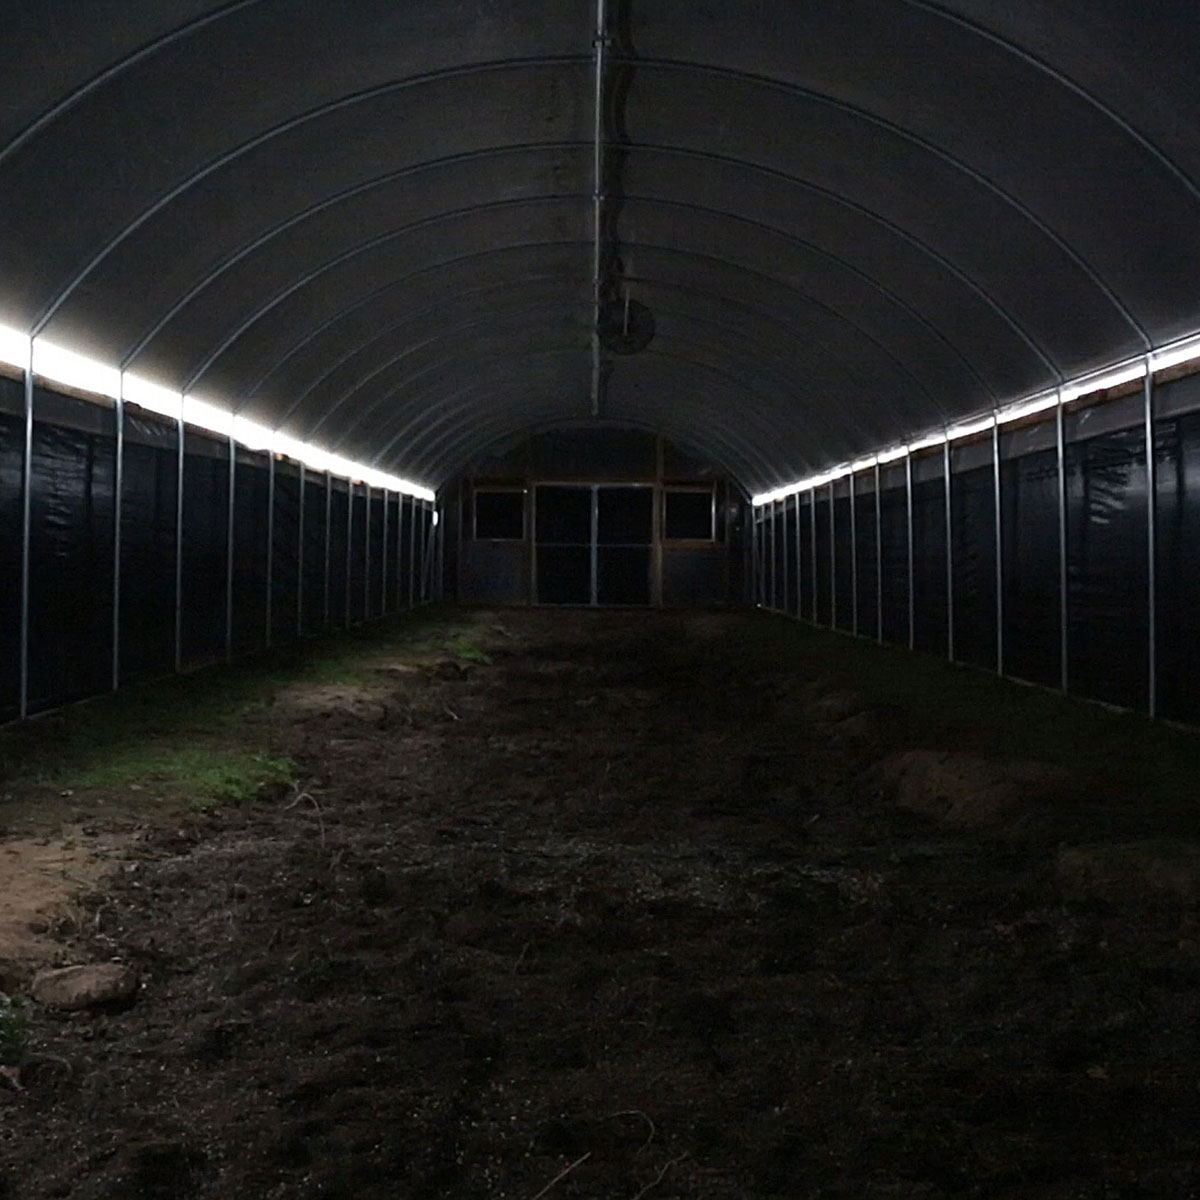 20 Wide Hoop House Greenhouse Auto Light Dep By